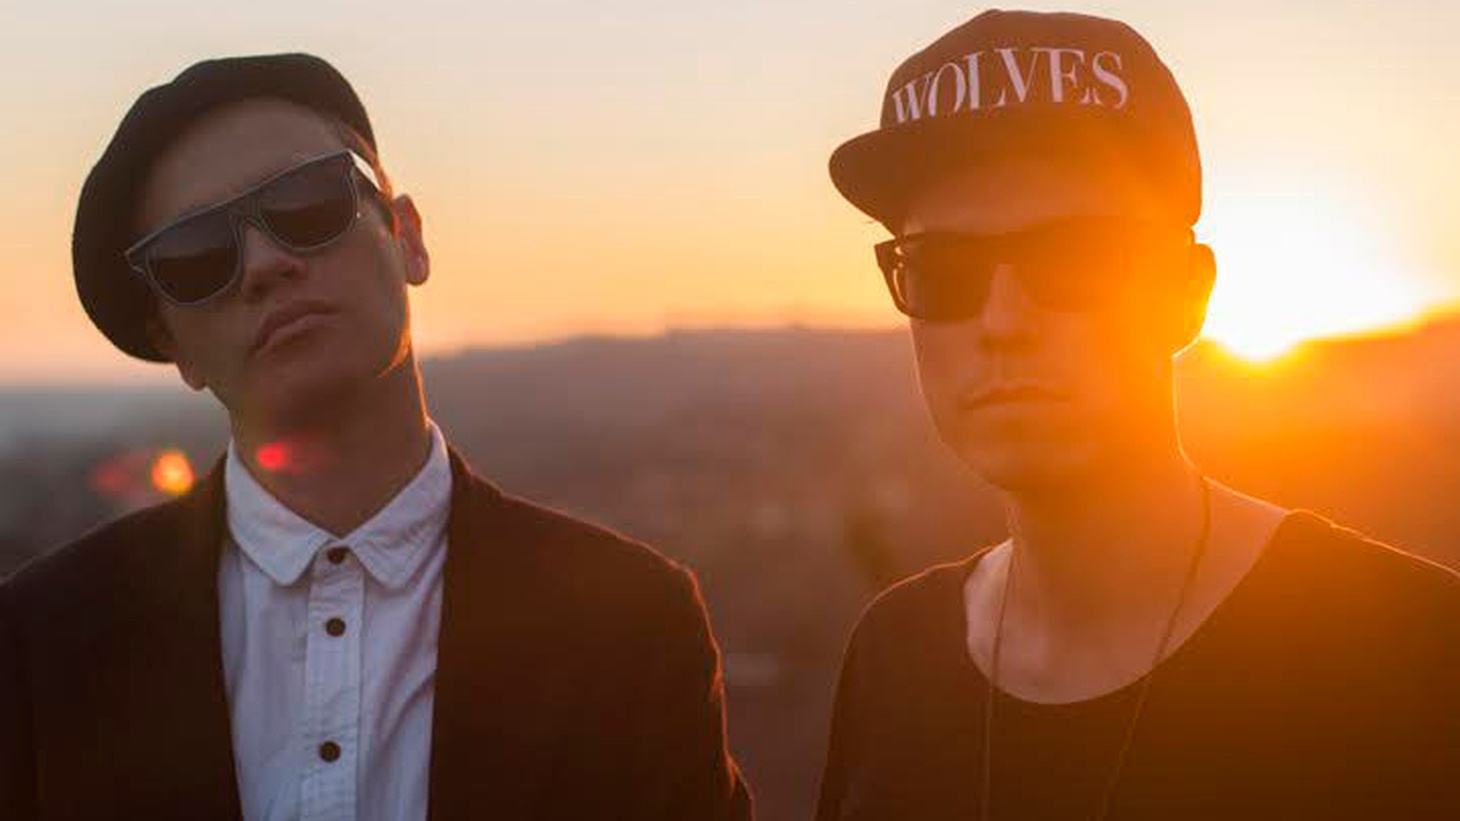 Game on for Kiwi duo Electric Wire Hustle, who have worked with Usher and Mos Def, in addition to their own forward-thinking albums.